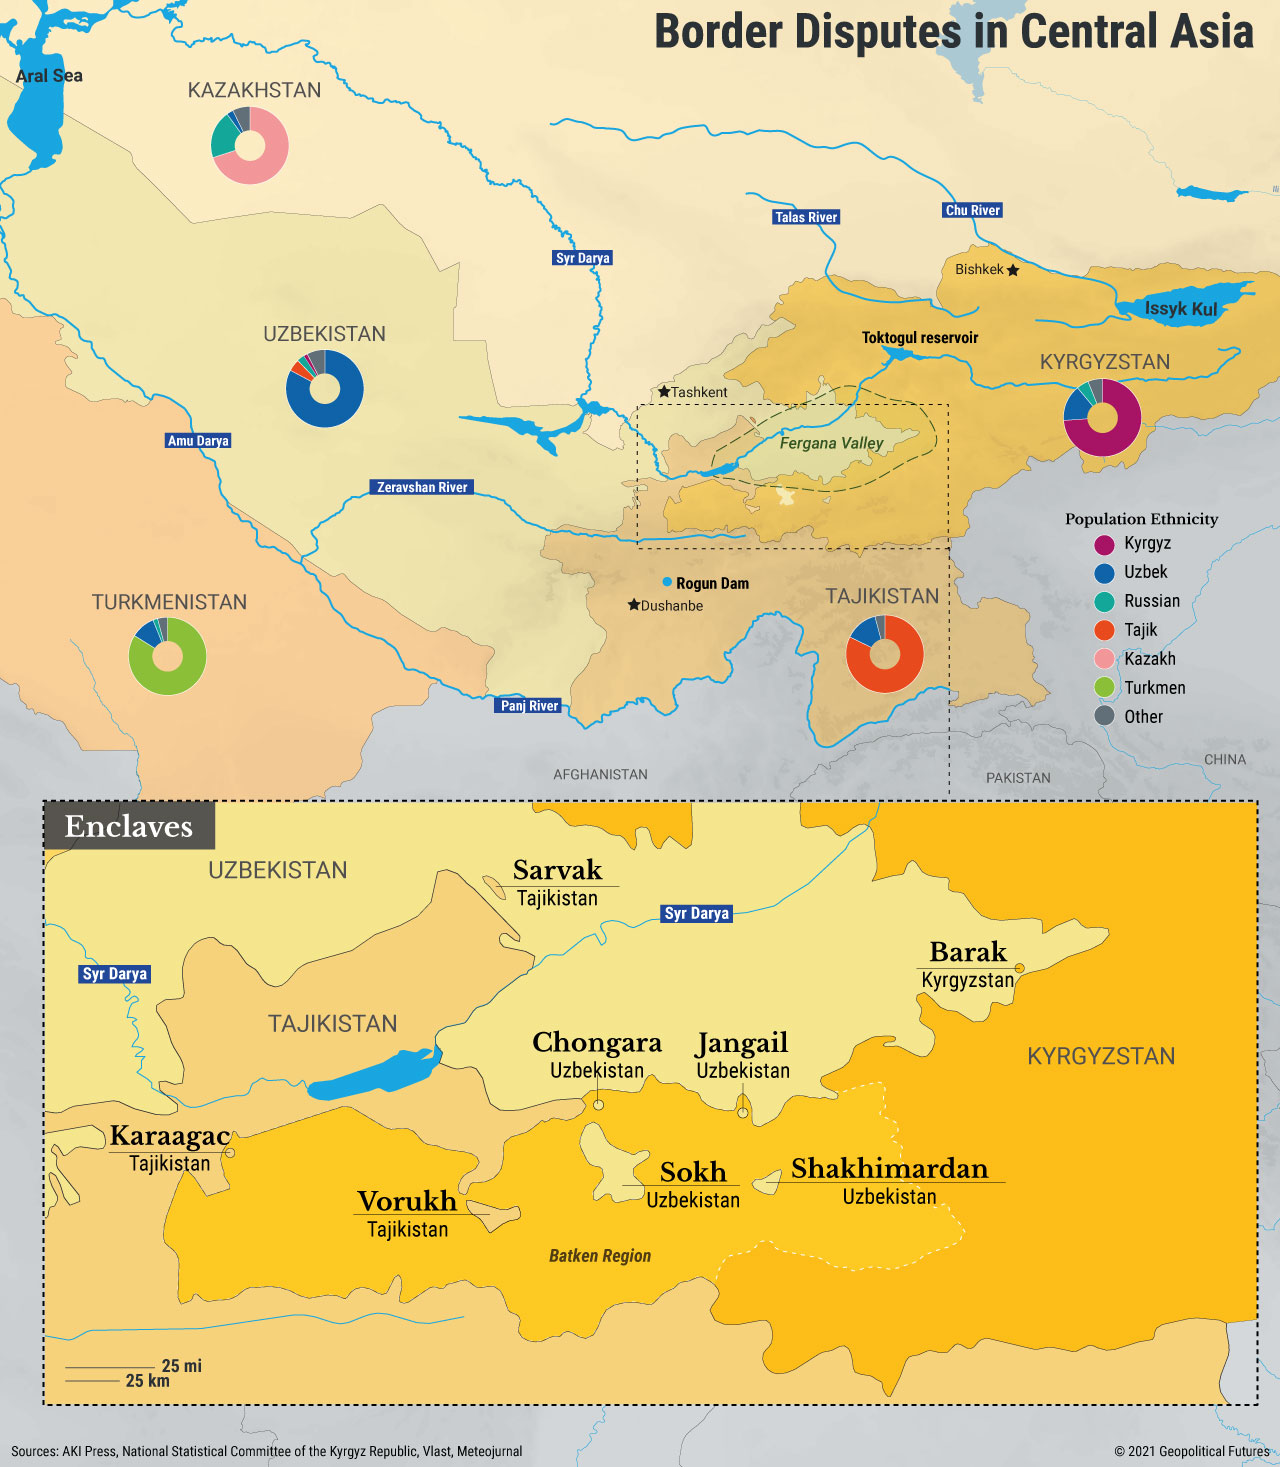 Border Disputes in Central Asia